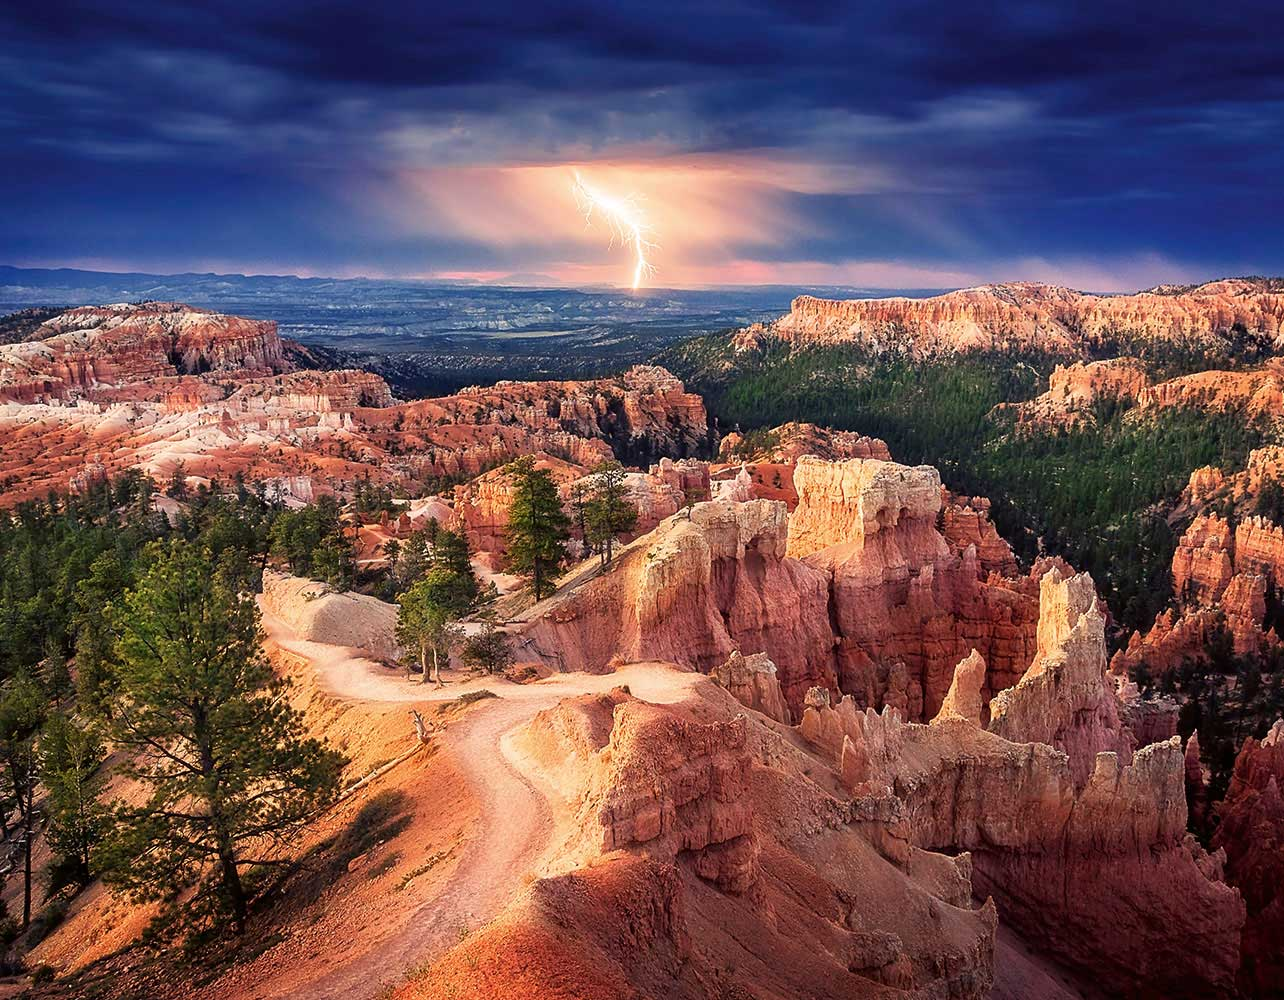 Fototapete kaufen online Lightning over Bryce Canyon WG